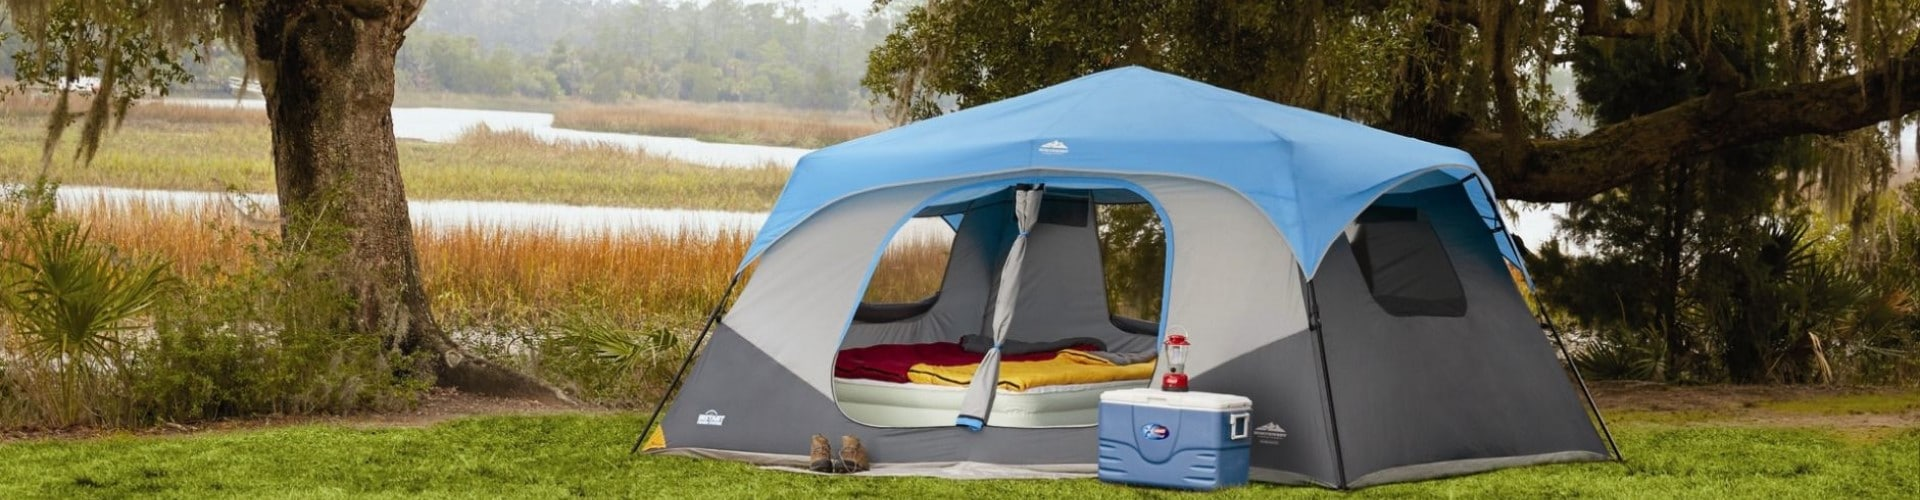 Best Instant Tents Reviewed in Detail